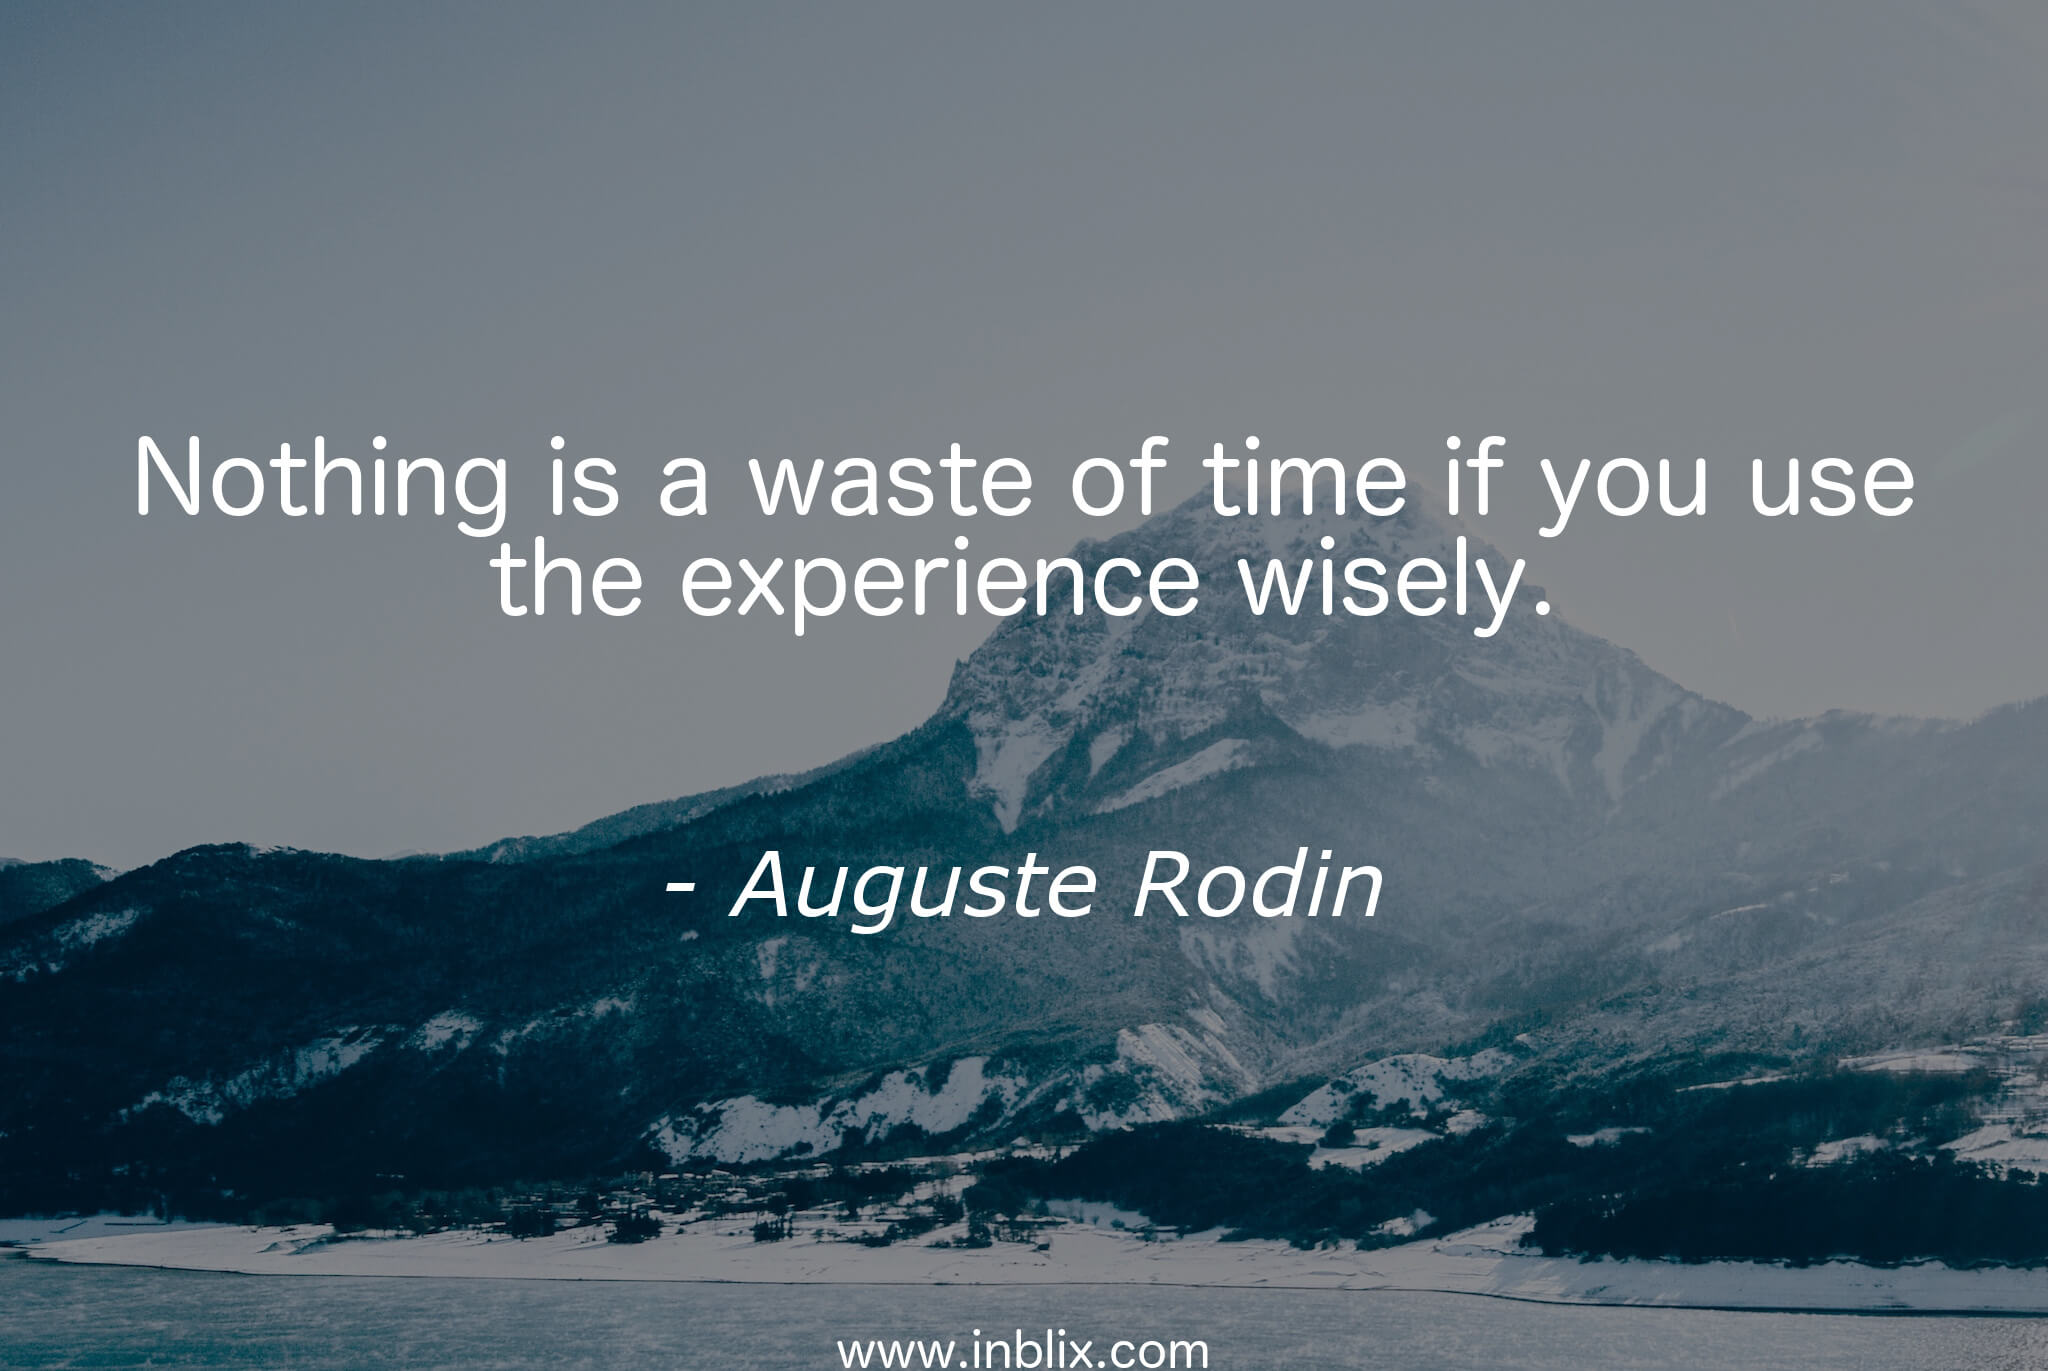 Nothing is a waste of time is you use the experience wisely.